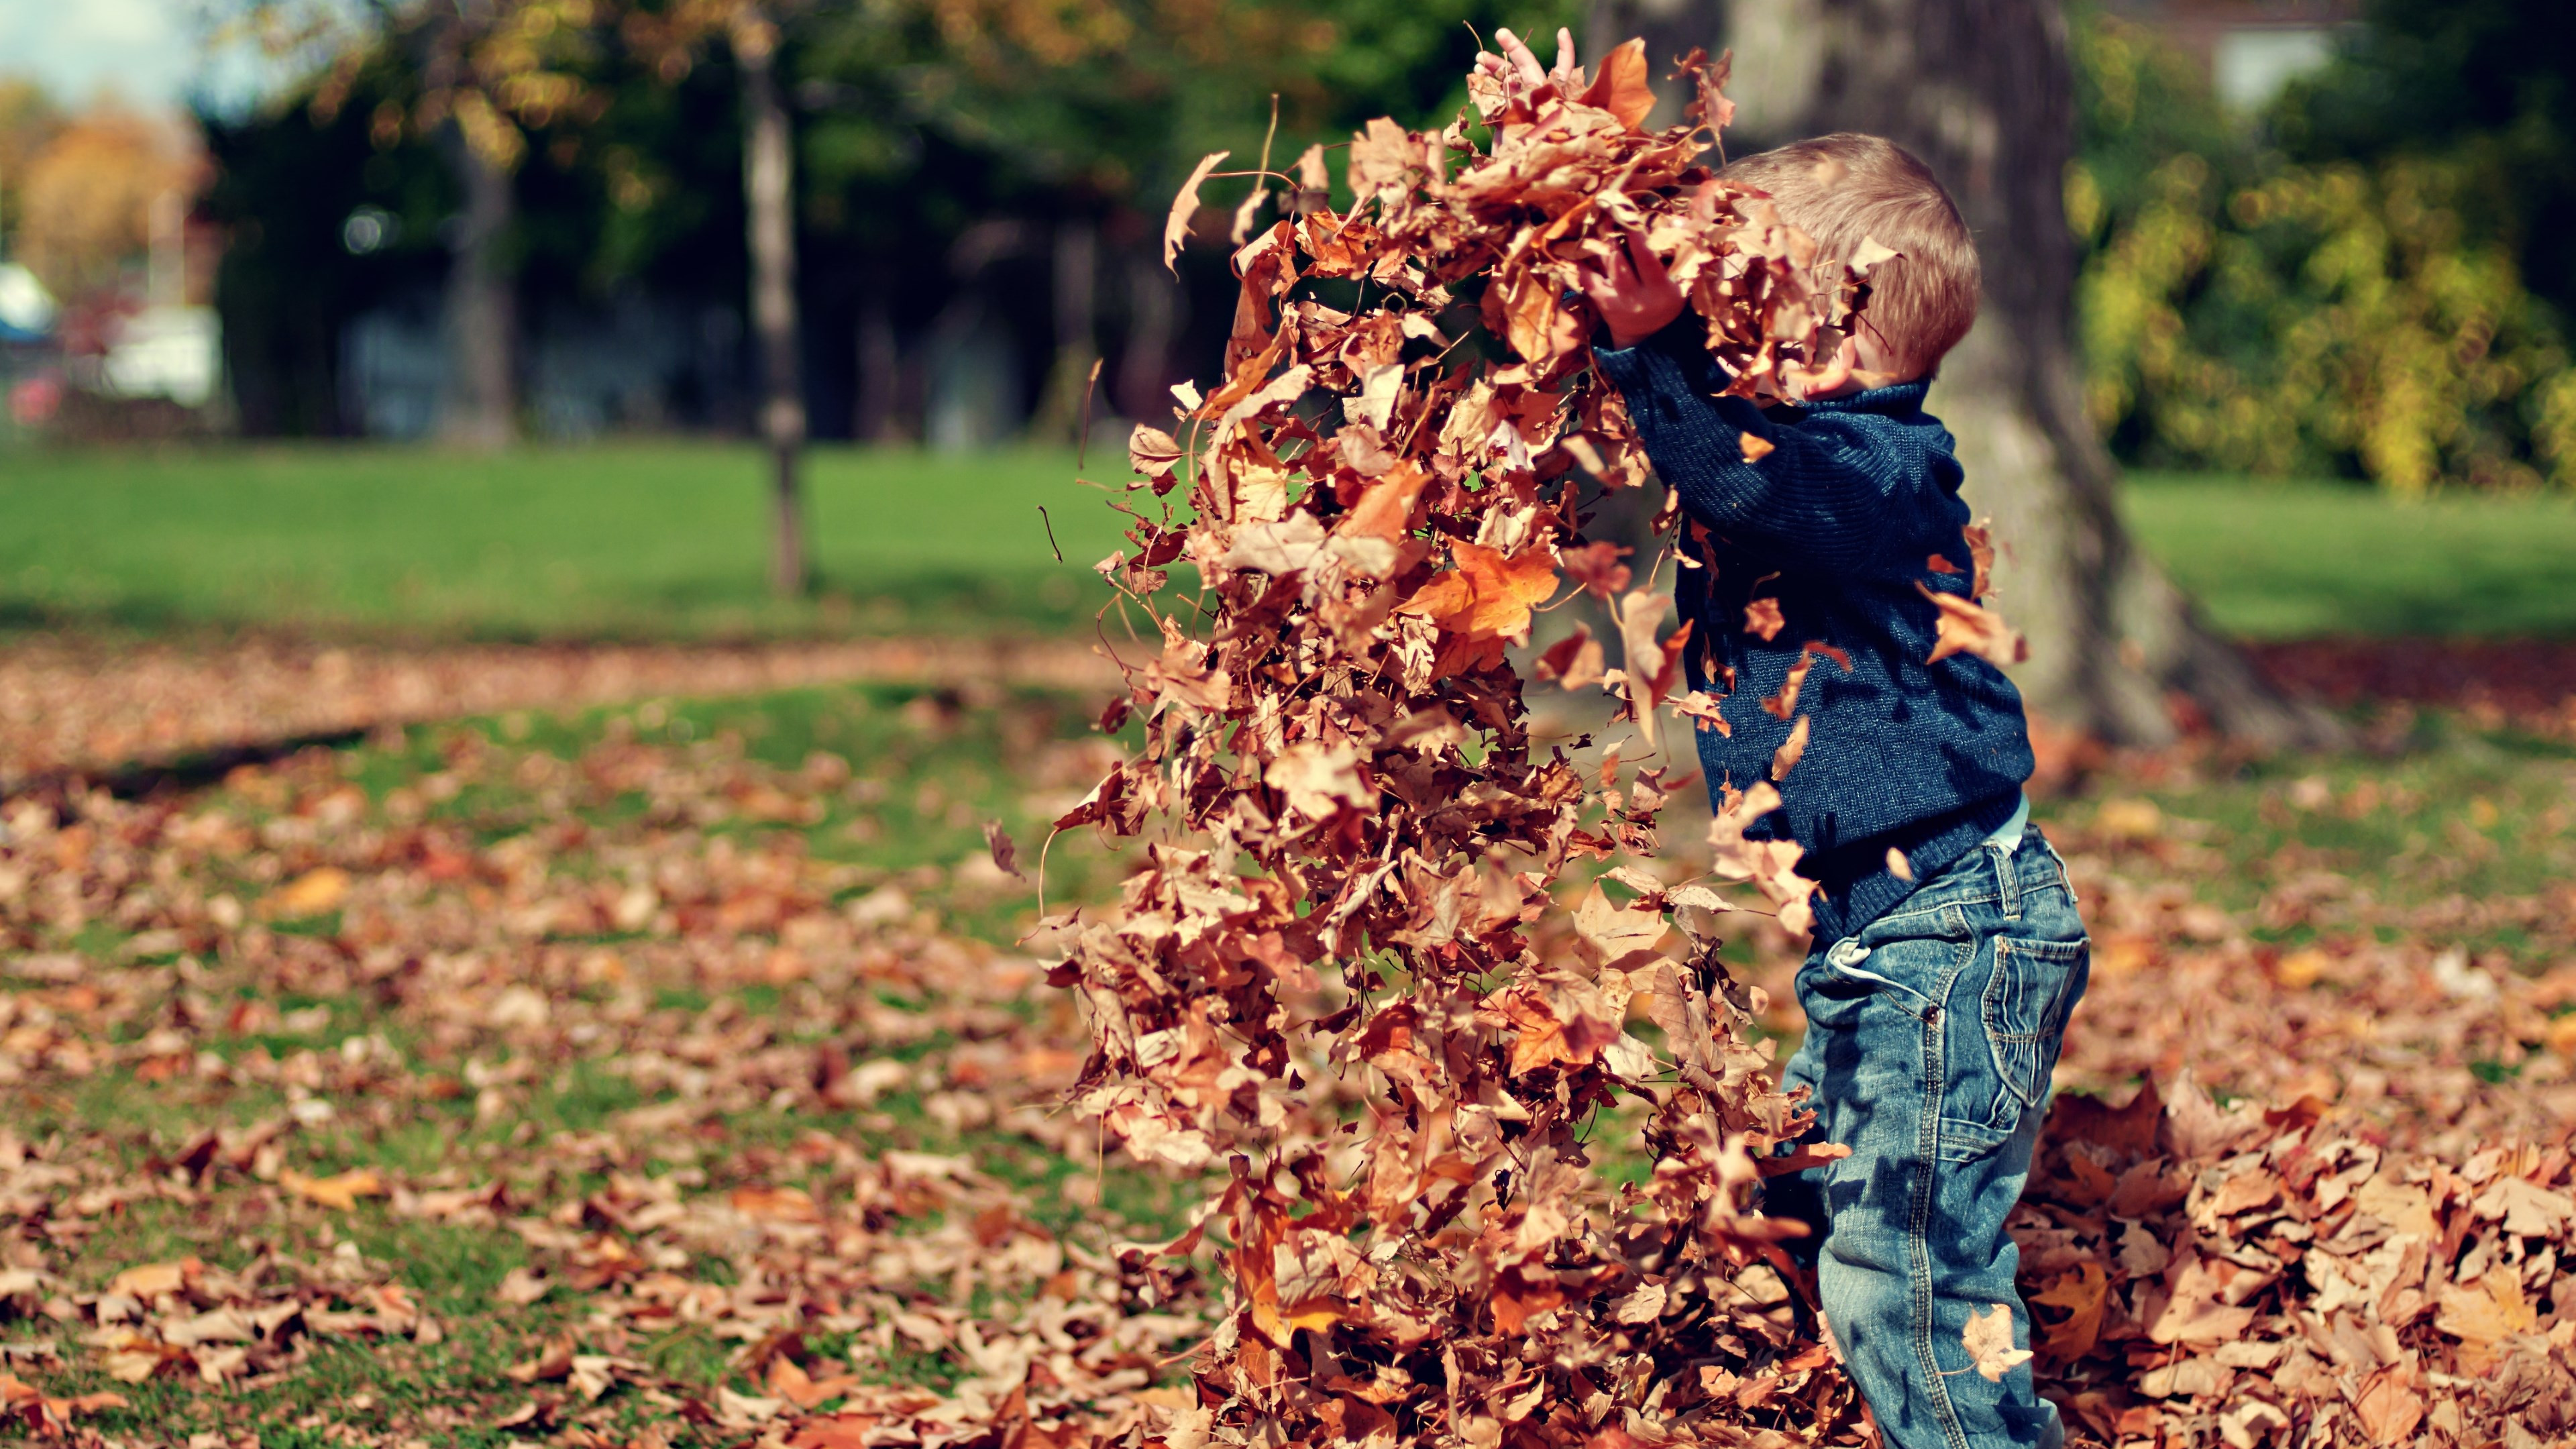 The child is playing with leaves wallpaper 3840x2160